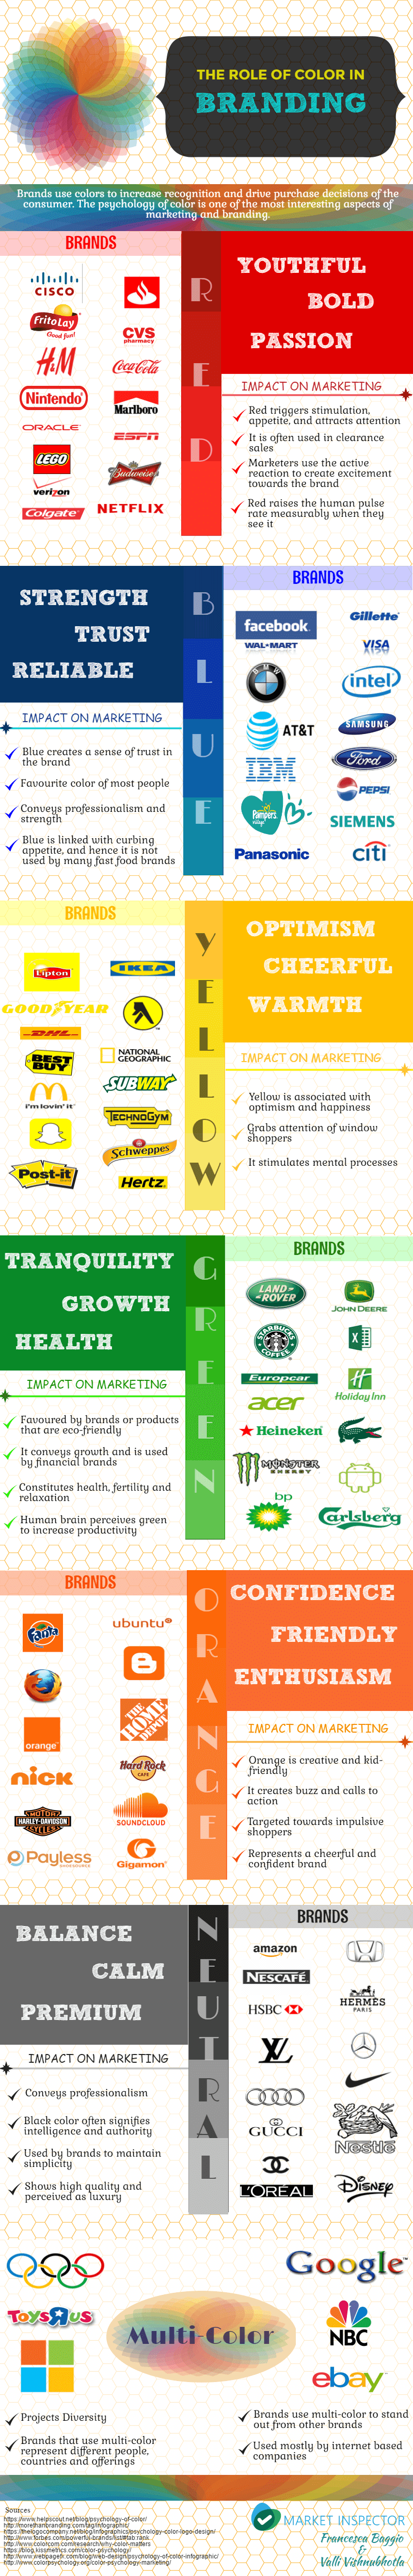 How Color Plays a Major Role in Branding[Infographic]